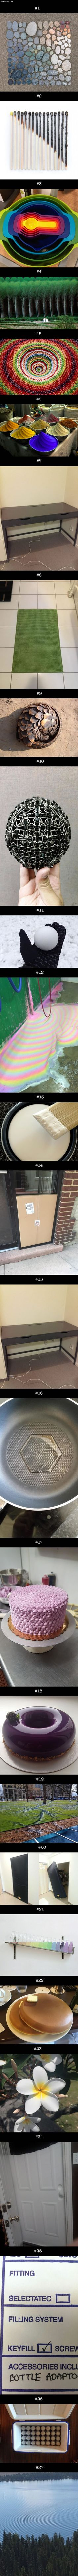 27 Oddly Satisfying Photos That Are Just Right - I love 27 and 21 the cakes are amaze